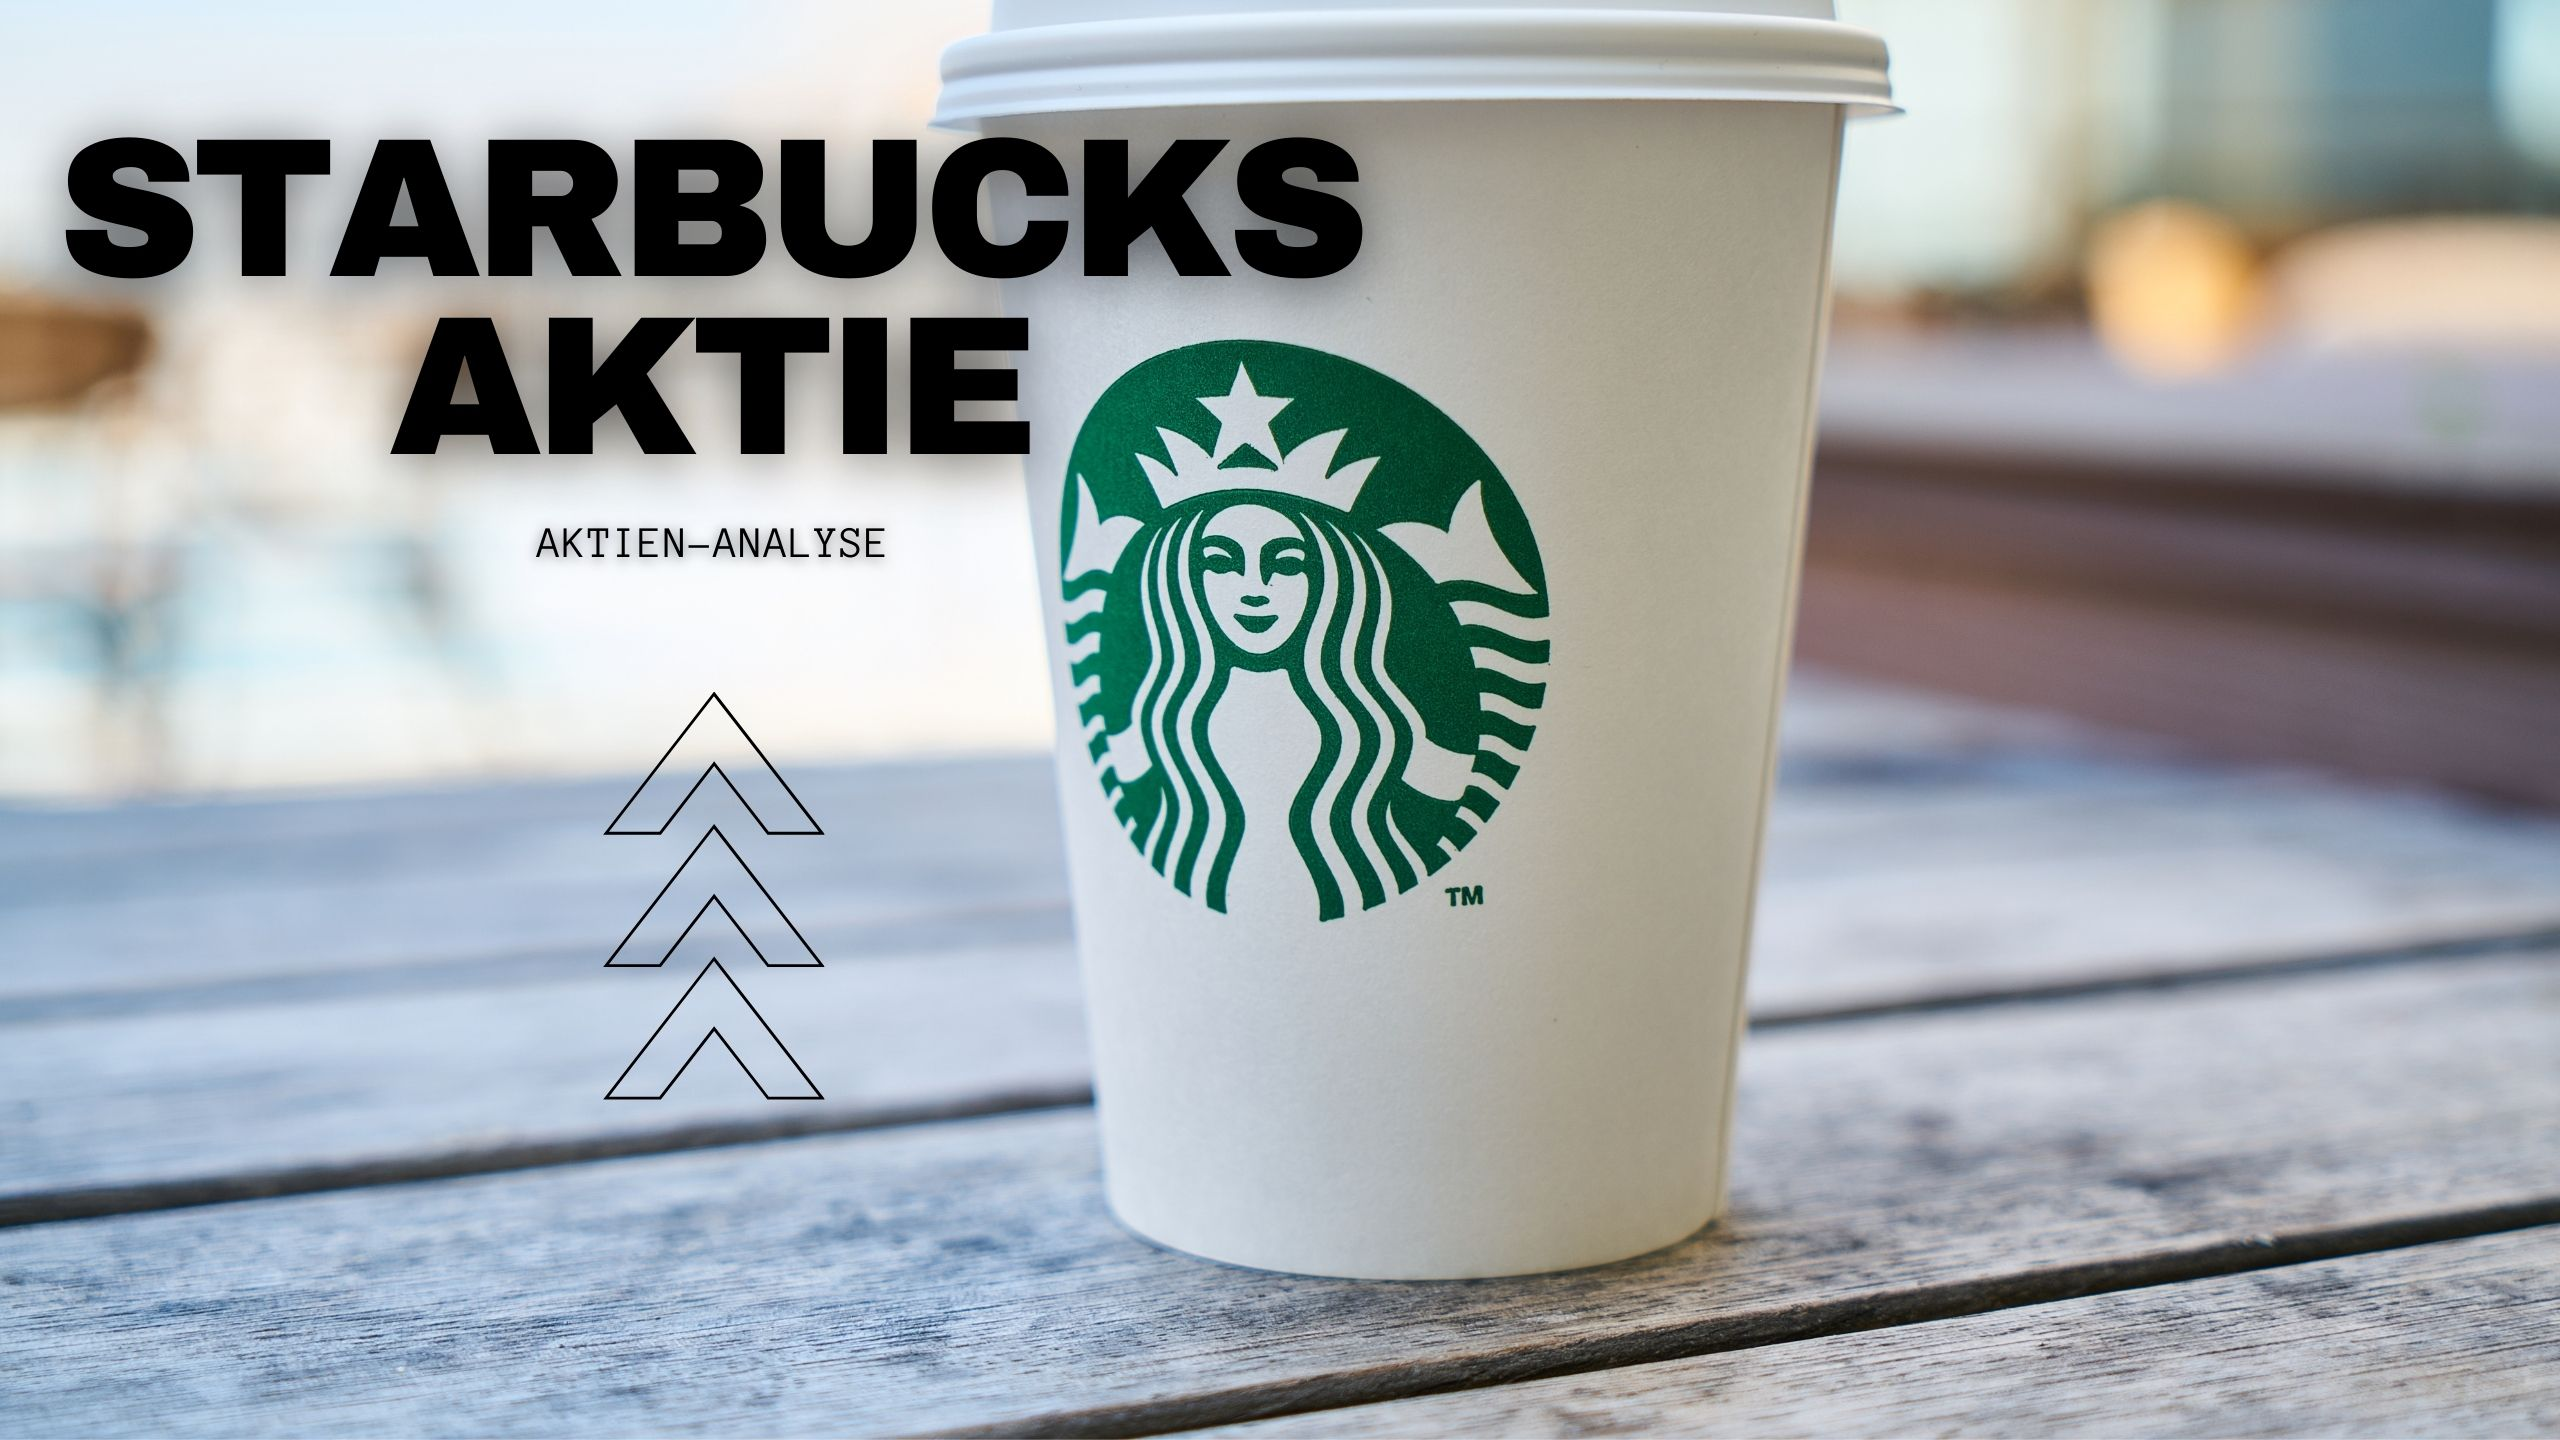 Starbucks Aktie Analyse 2021